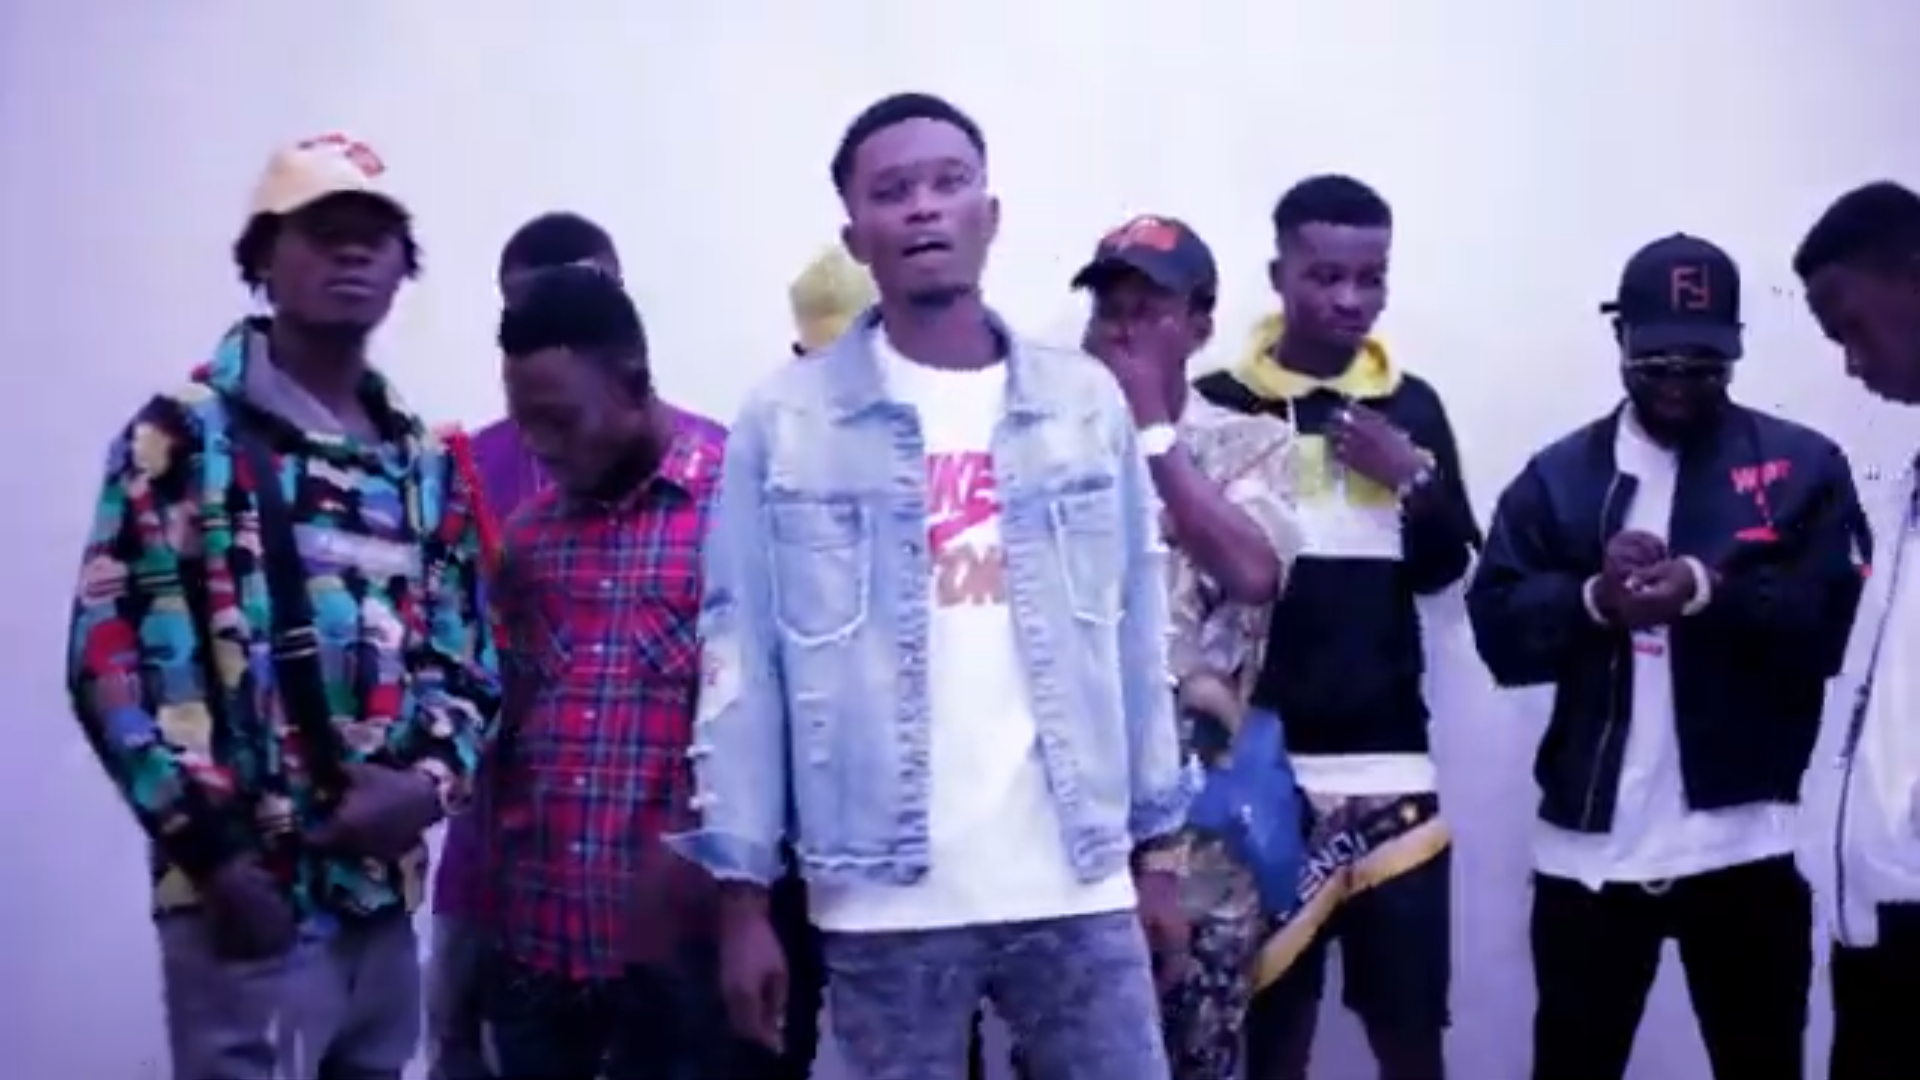 Y Kay x Kojo Songz x Stunner Bizzle x Snr Modeus  – Searching For Money (Pro By YKay)